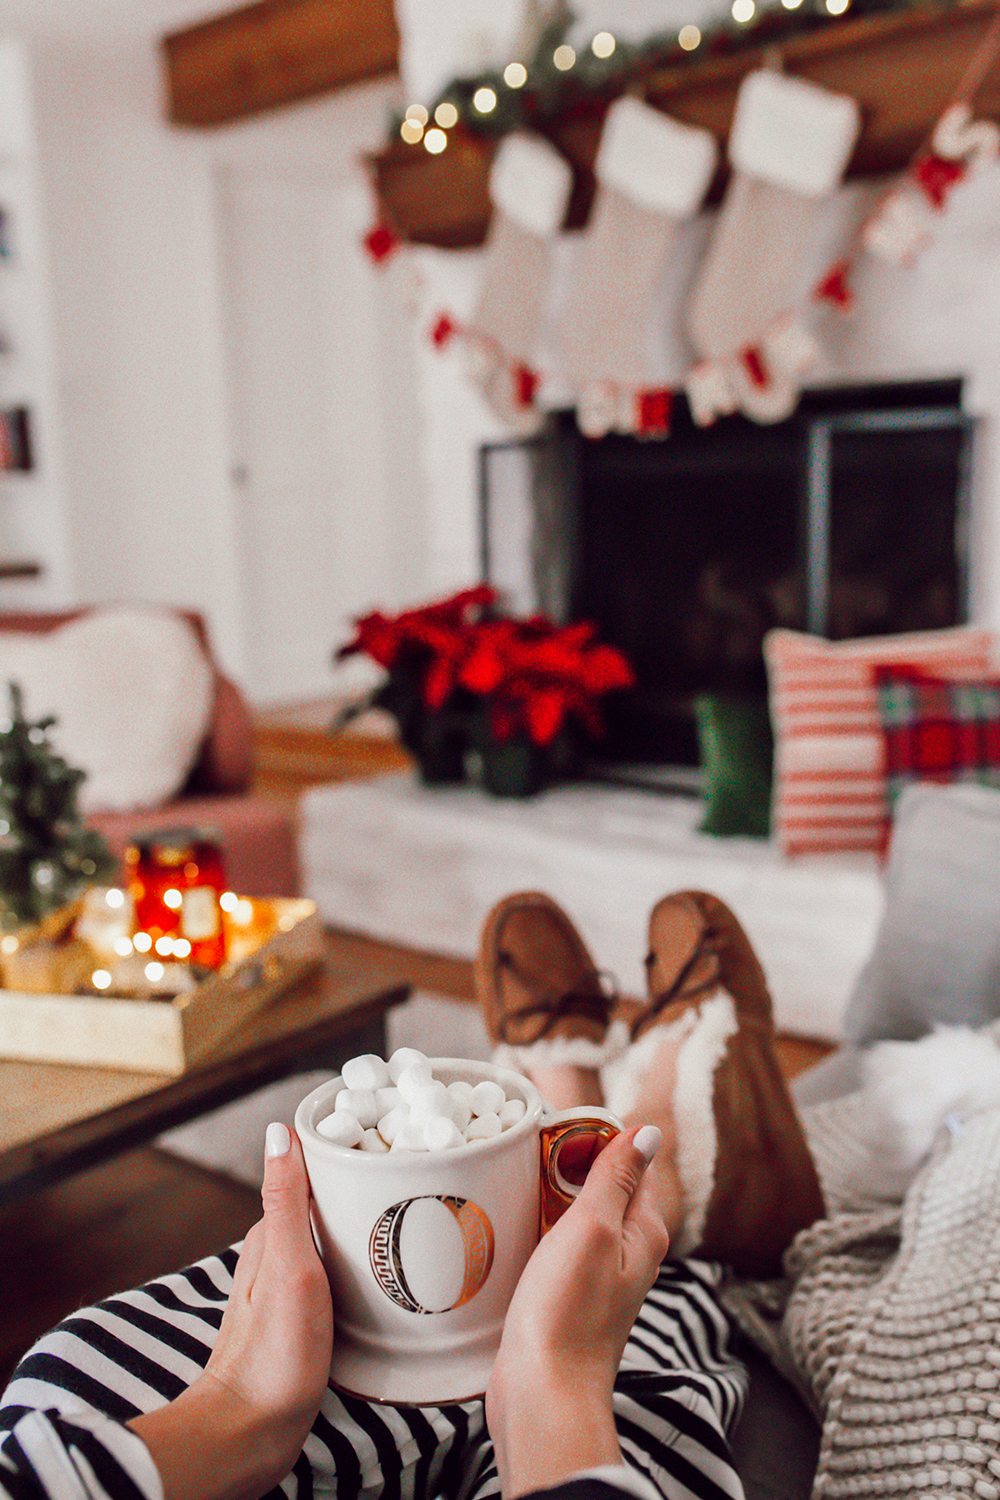 livvyland-blog-olivia-watson-ugg-slippers-cozy-morning-home-kate-spade-striped-pajamas-7